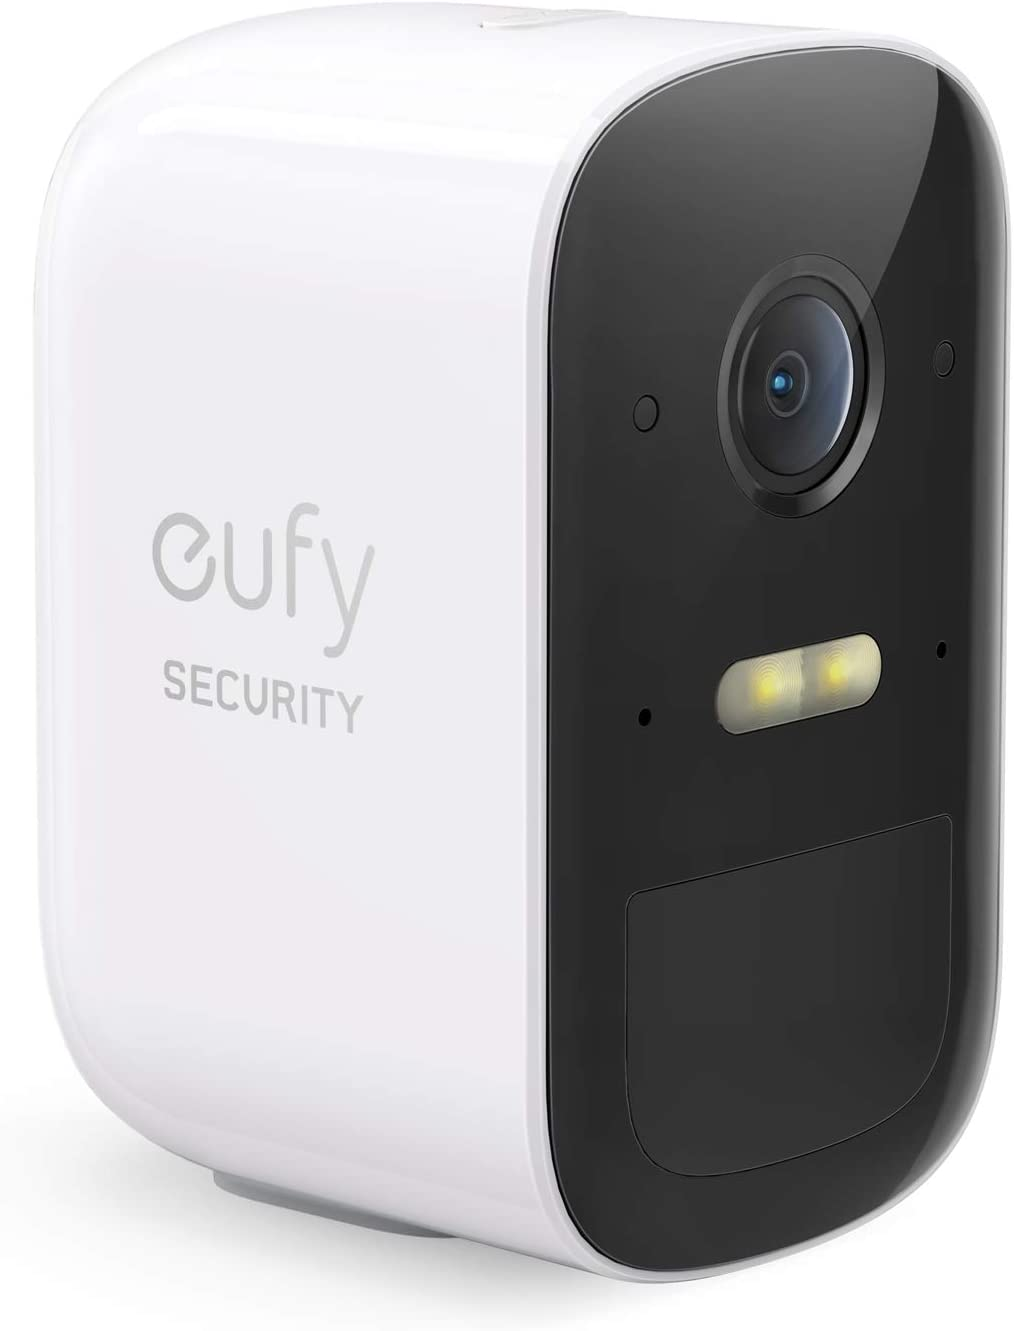 eufy Security, eufyCam 2C Pro Wireless Home Security Add-on Camera, 2K Resolution, 180-Day Battery Life, HomeKit Compatibility, IP67 Weatherproof, Night Vision, and No Monthly Fee.